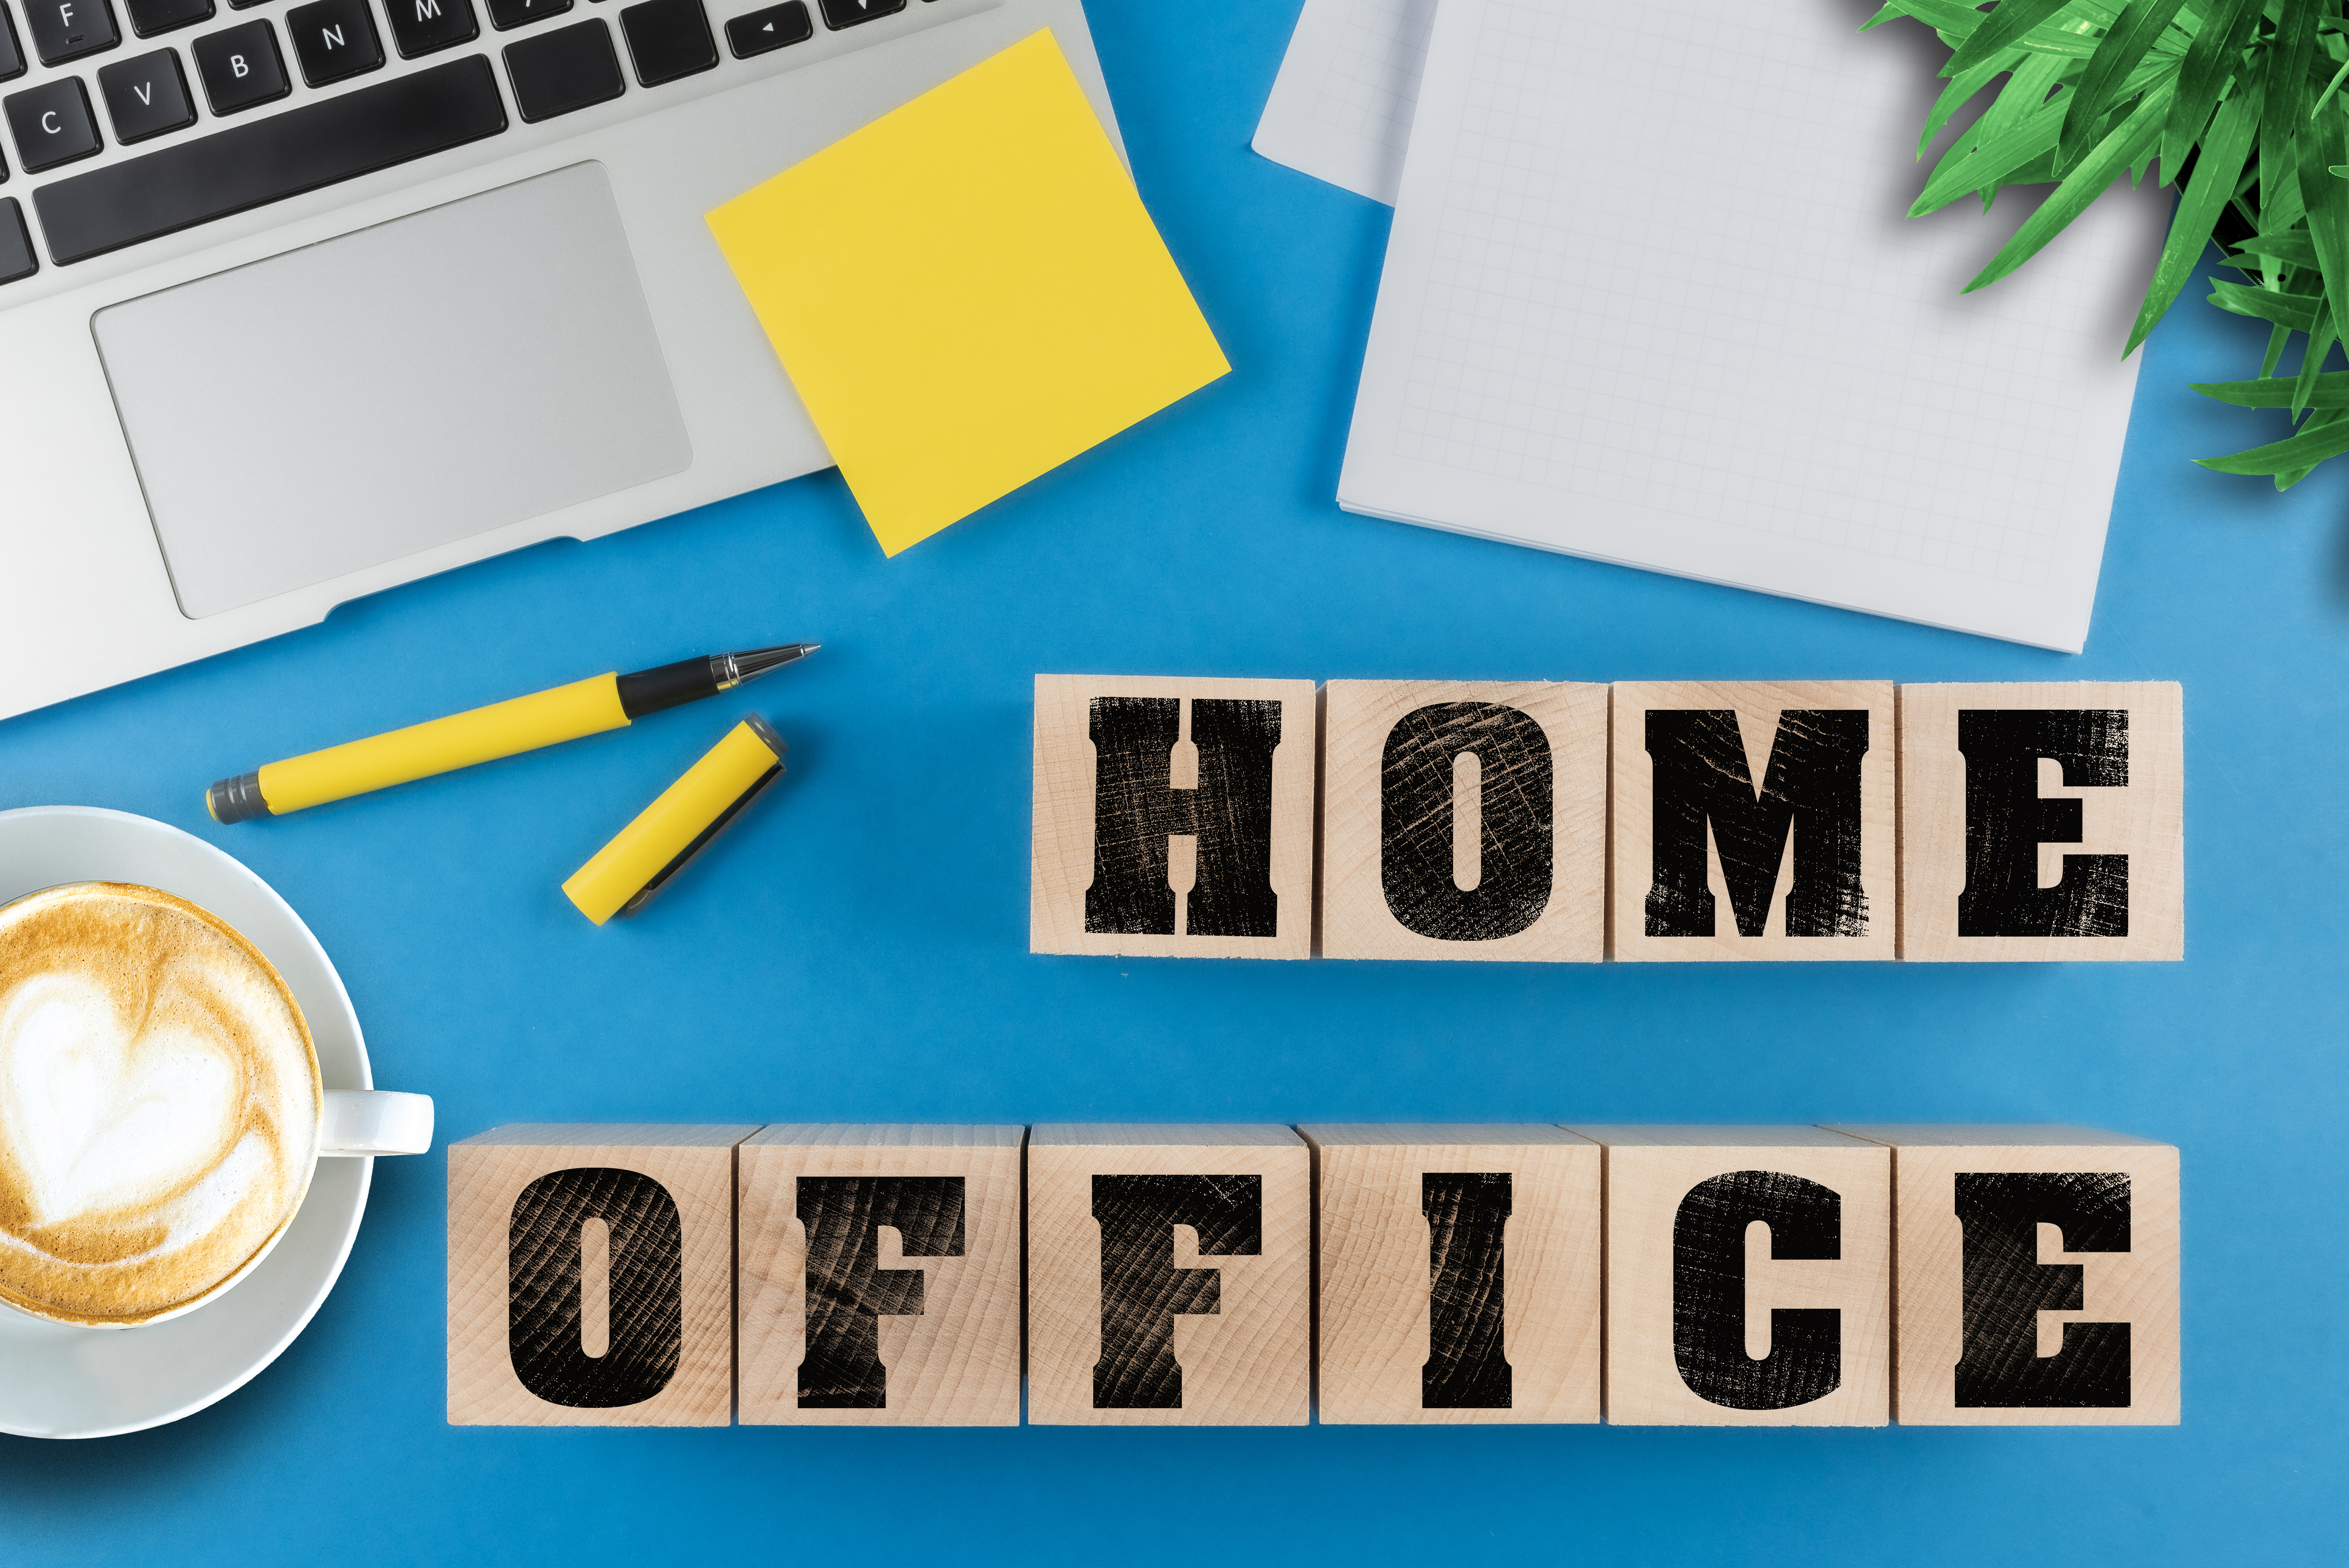 working from home concept, text HOME OFFICE on wood cubes besides laptop computer and notepad on desk